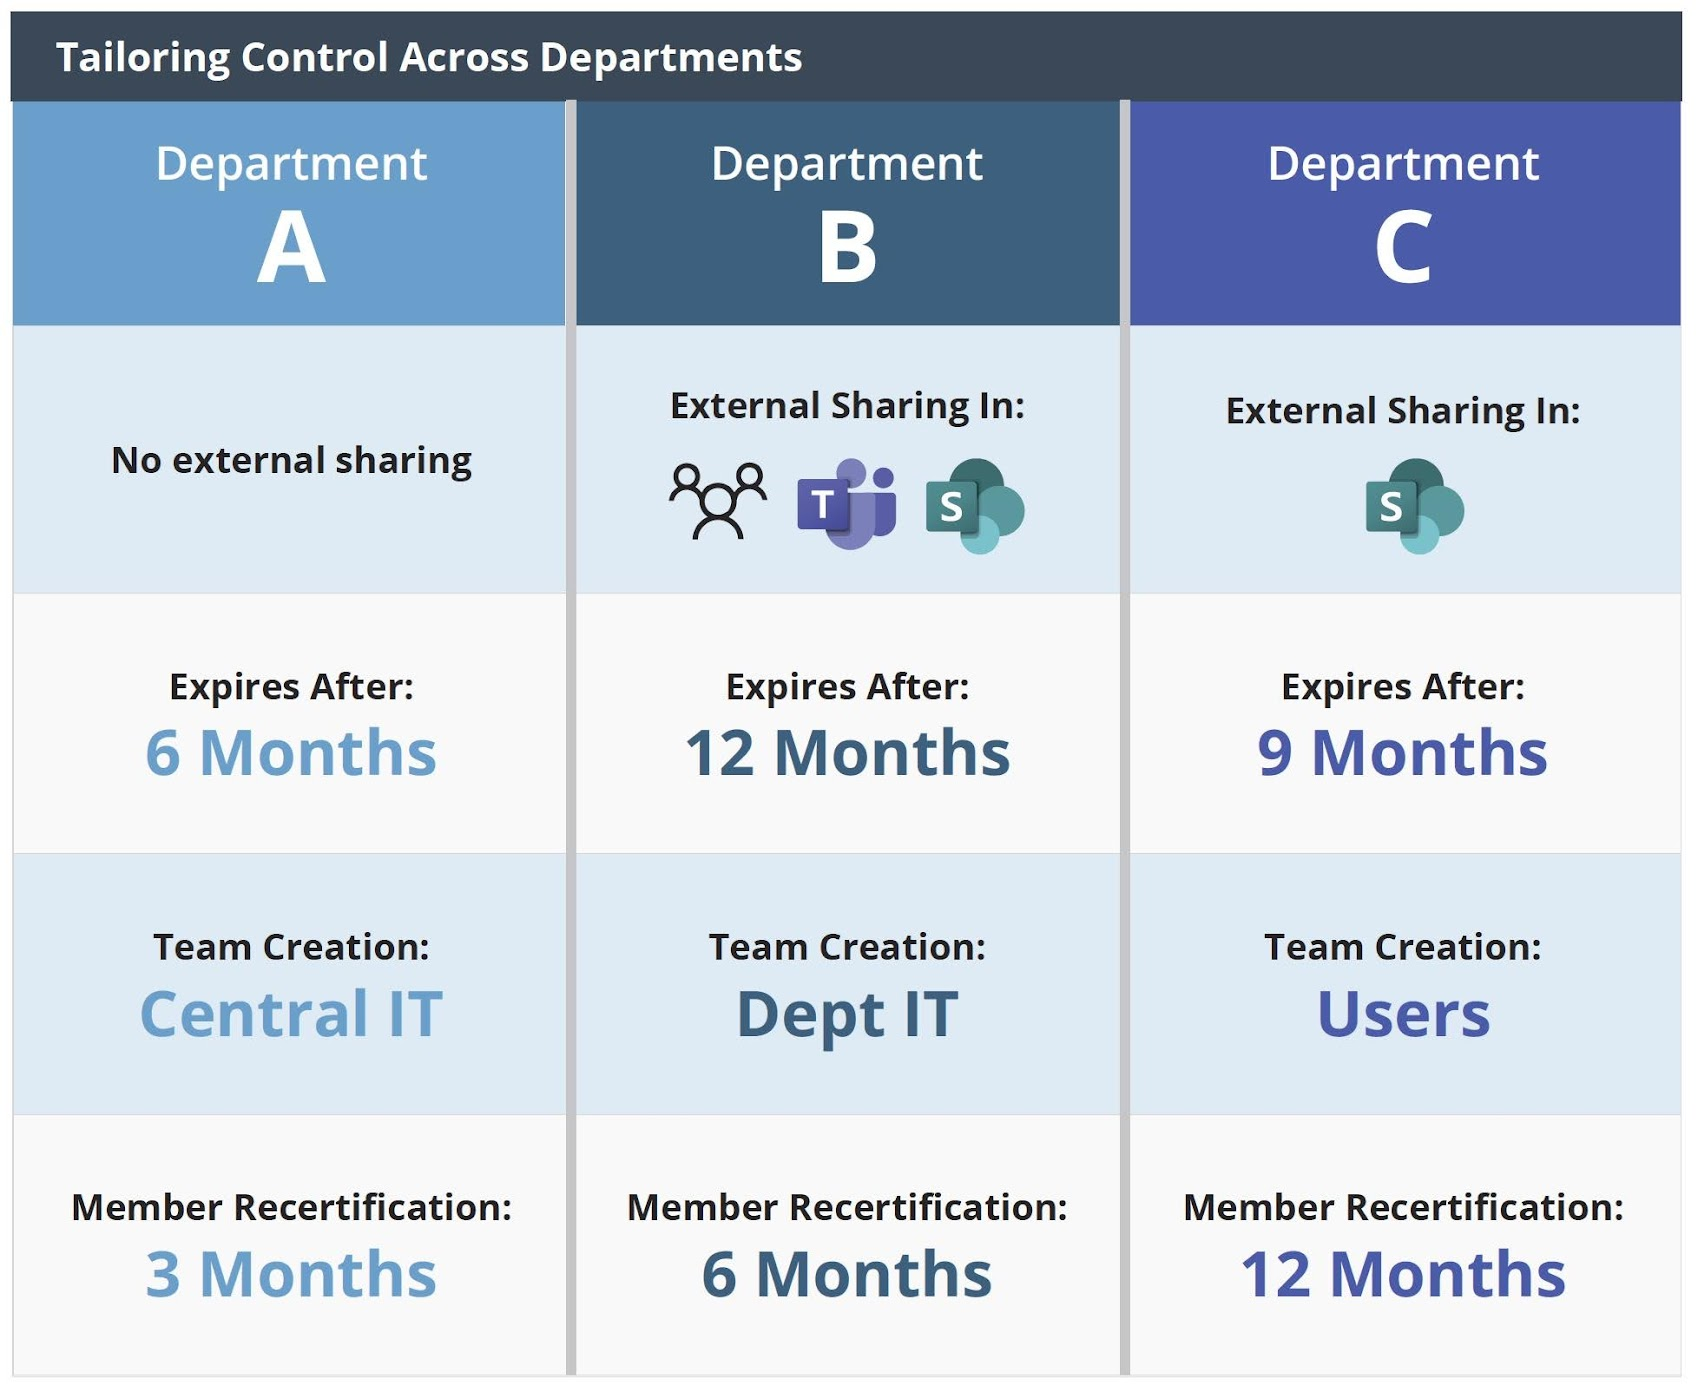 Tailoring Control Across Departments